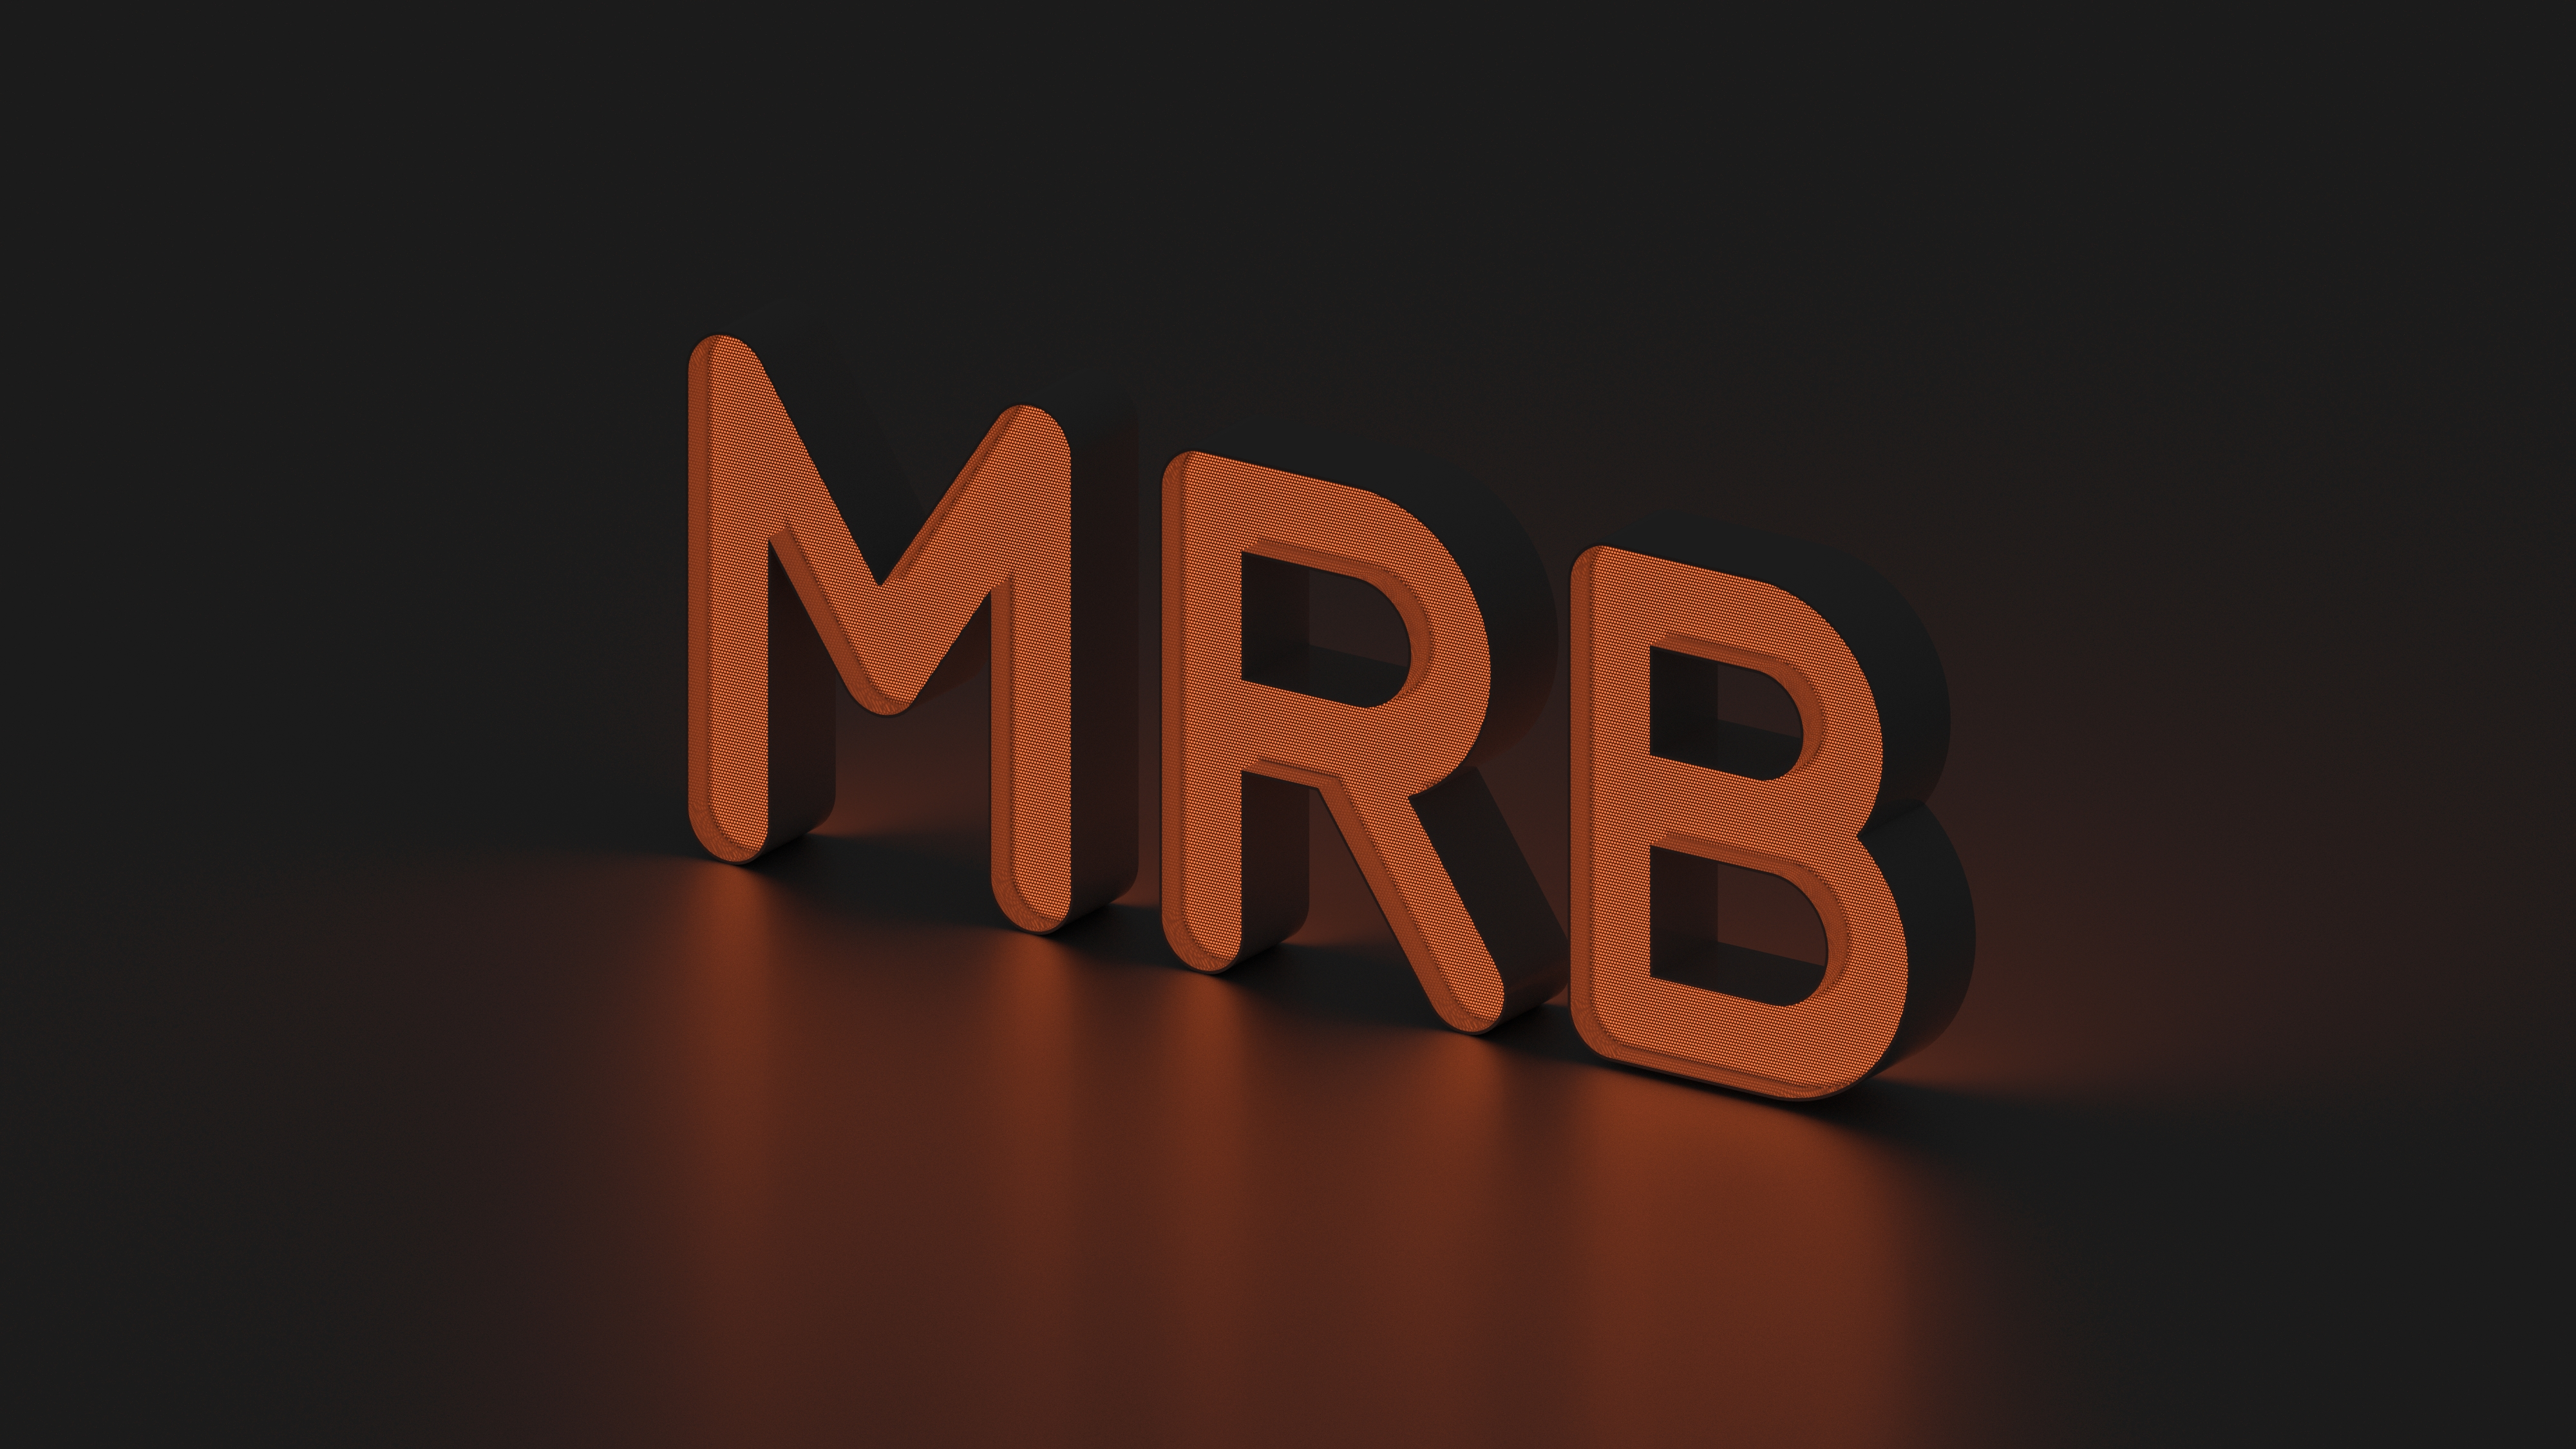 MRB letters night